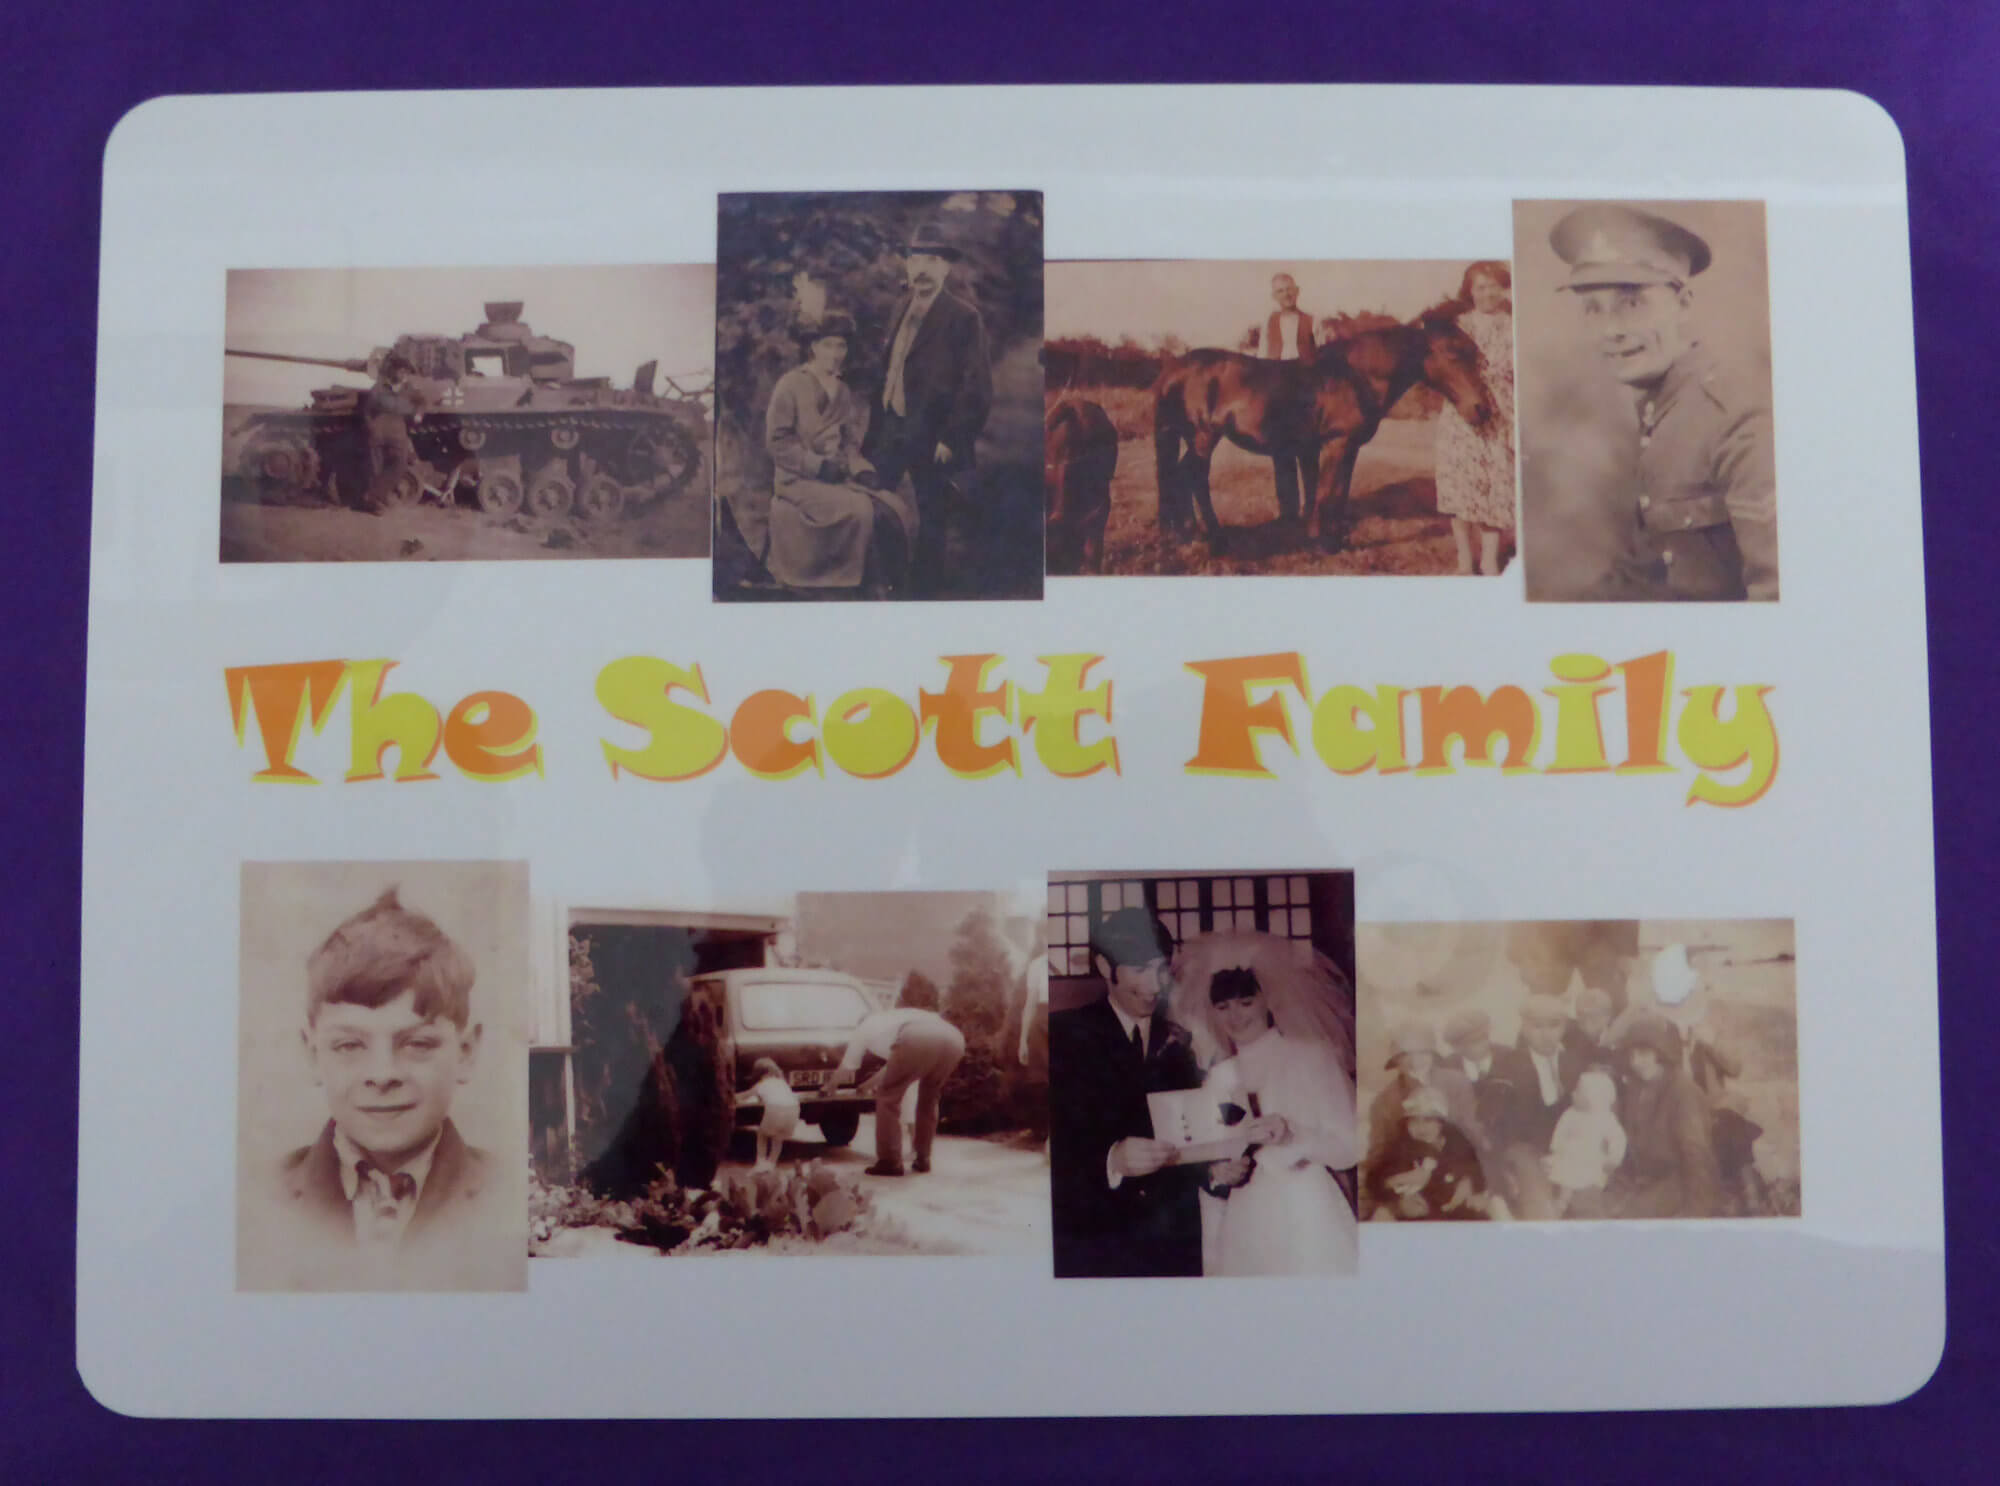 Family Photos table mat showing photos your family and your family name